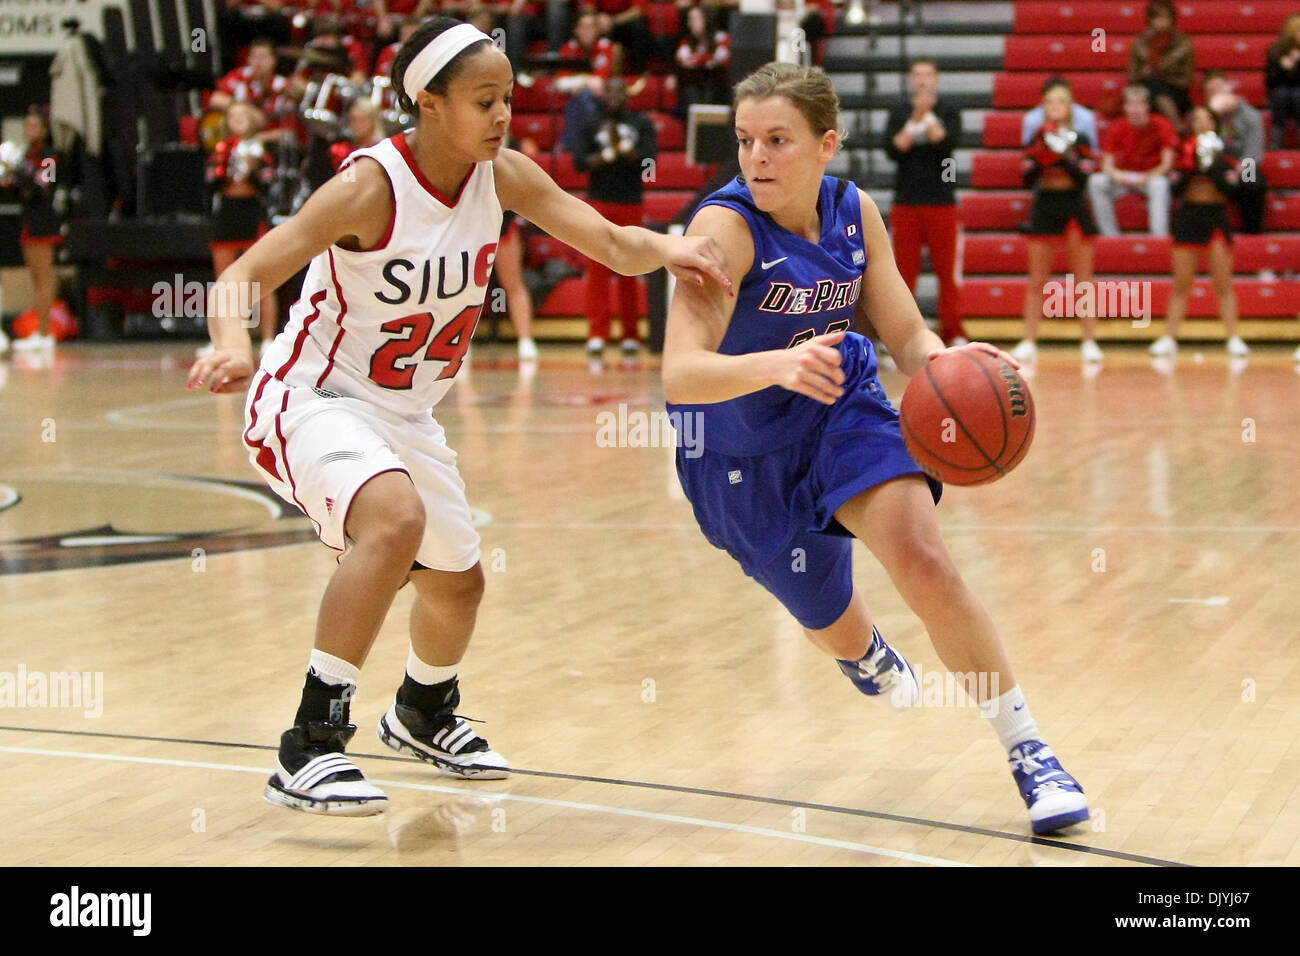 Dec. 3, 2010 - Edwardsville, Illinois, United States of America - DePaul guard Sam Quigley (22) and SIUE guard Courtney Kenner (24)  during a game between Southern Illinois University Edwardsville (SIUE) and DePaul University at the Sam M. Vadalabene Center in Edwardsville, Illinois. DePaul defeated SIUE 76-40. (Credit Image: © Scott Kane/Southcreek Global/ZUMAPRESS.com) - Stock Image